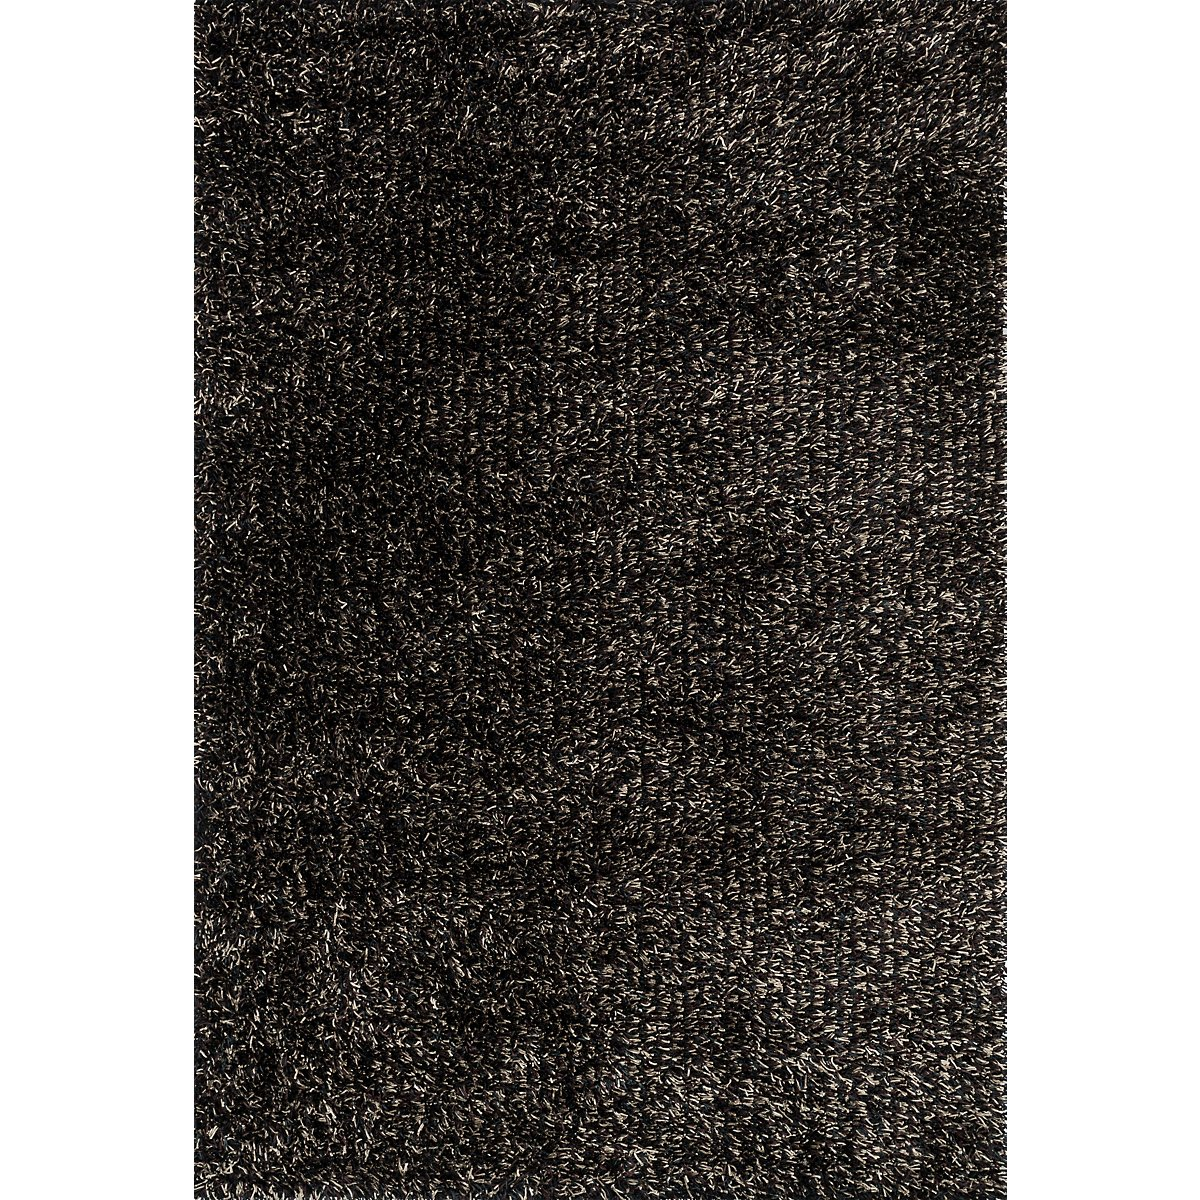 Carrera Black 8X10 Area Rug